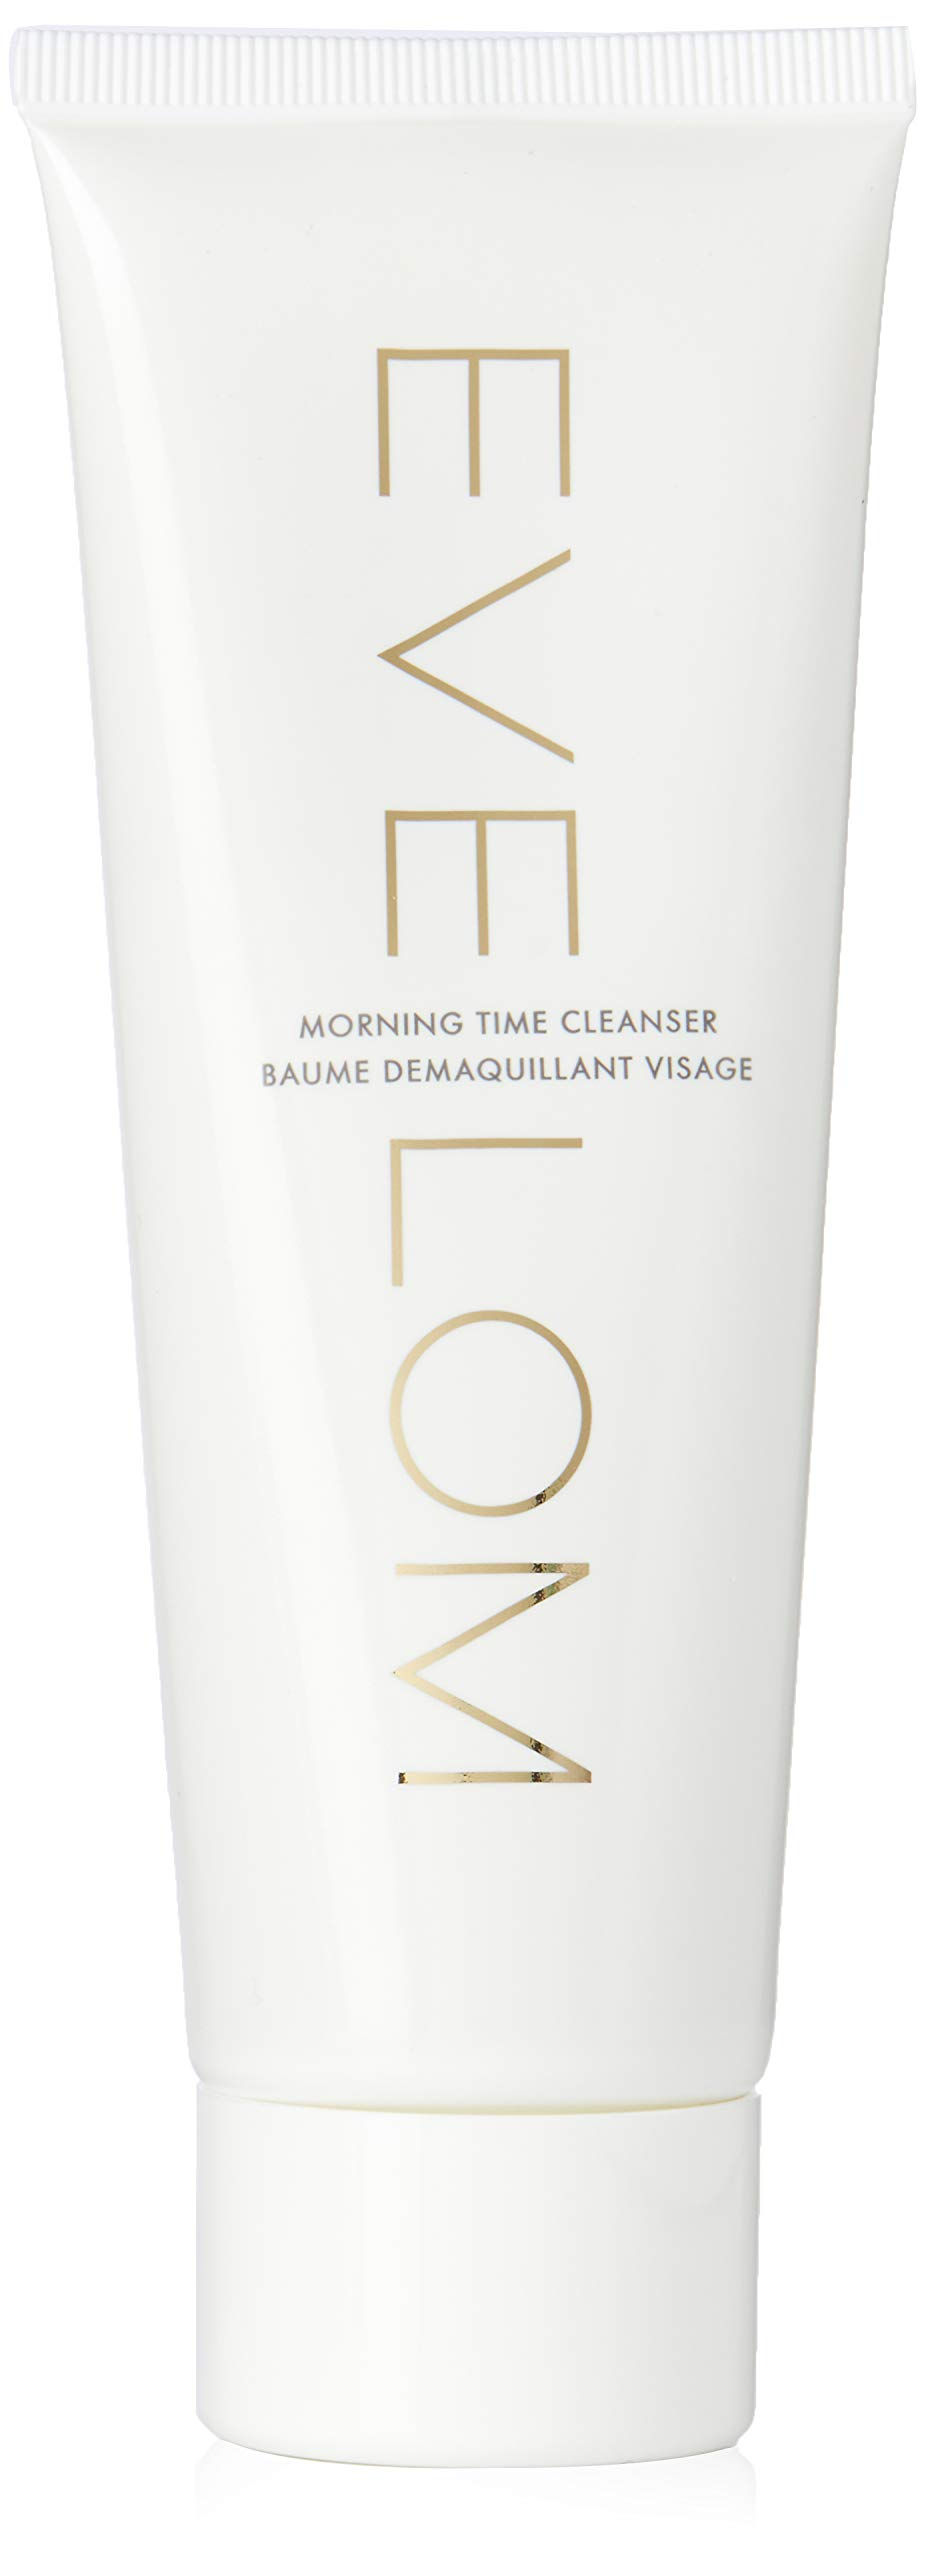 Eve Lom Morning Time Cleanser, 4.1 Ounce